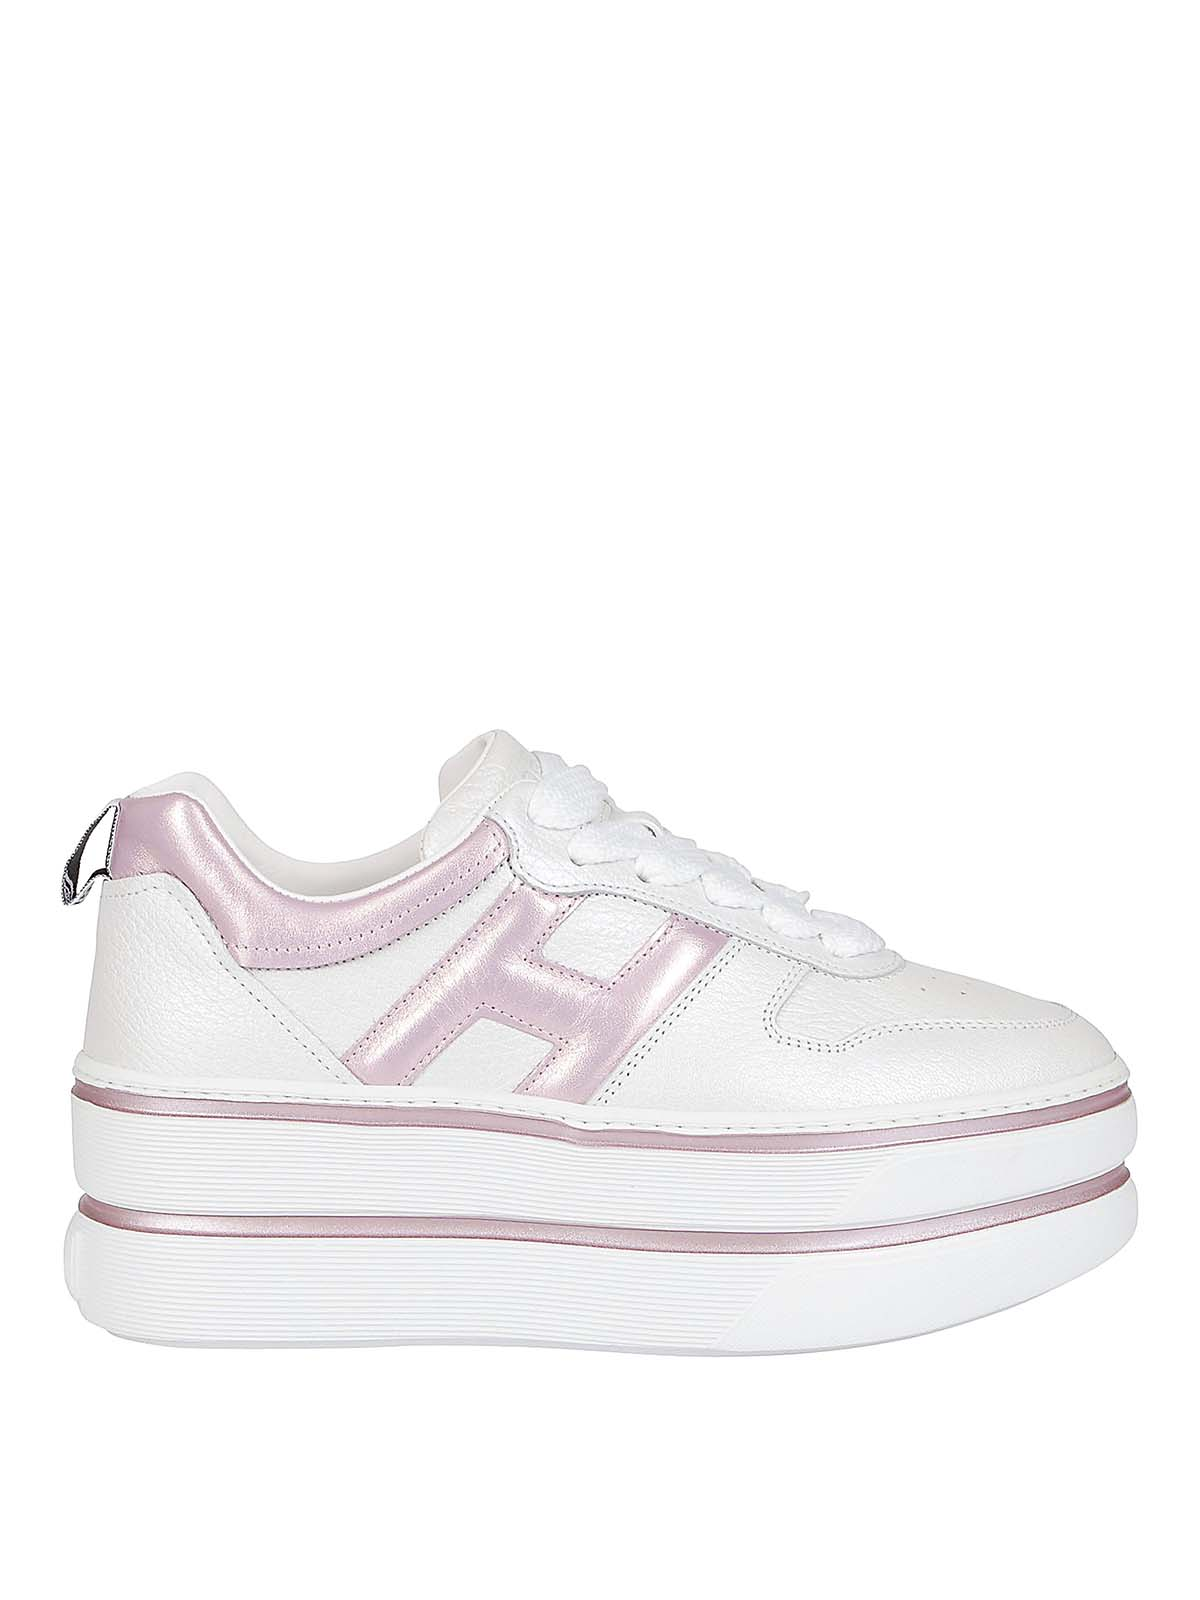 Hogan H449 White And Pink Sneakers